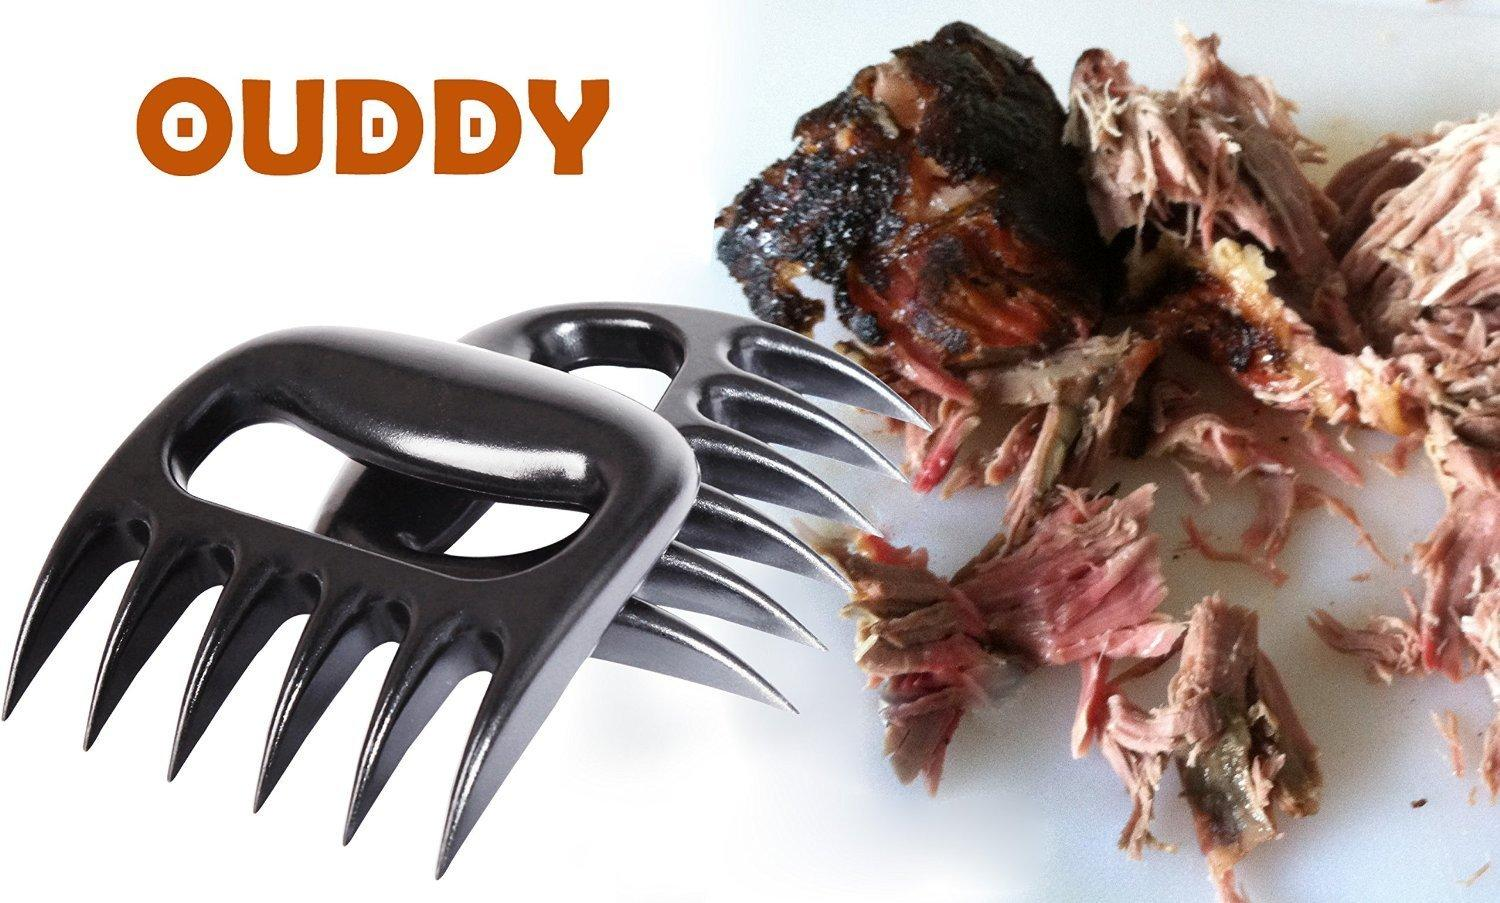 $7.89 Ouddy Heat Resistant Meat Claws Meat Forks, Easily Shred Pork & Brisket for BBQ, Set of 2